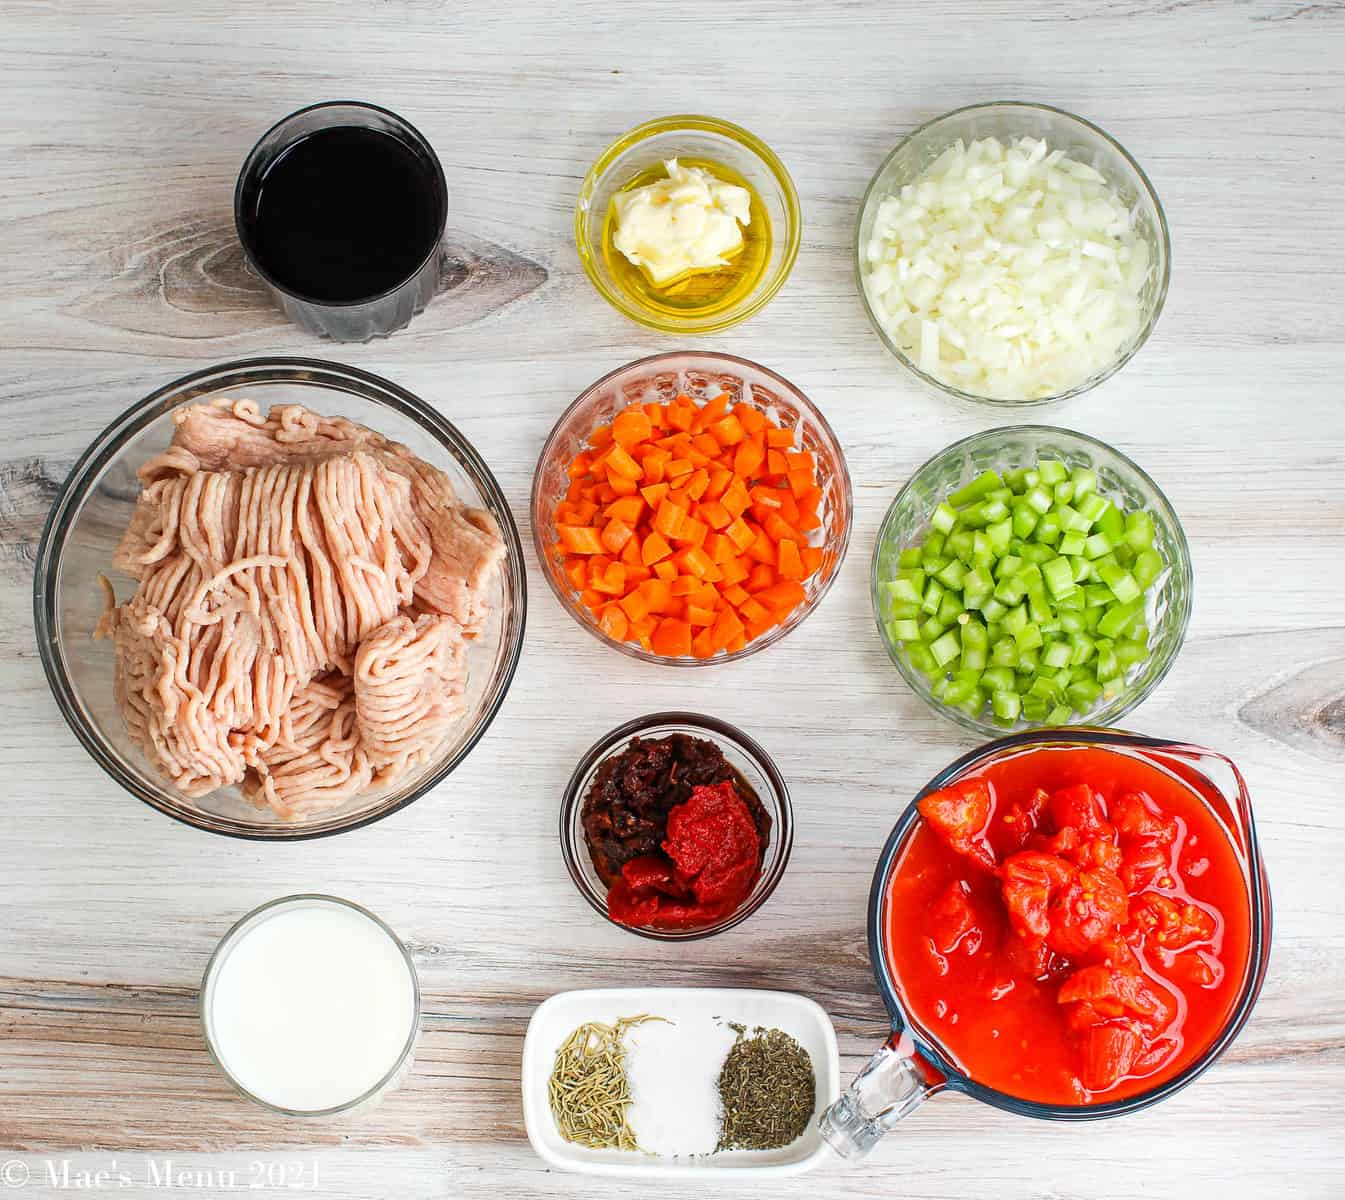 An overhead shot of all the ingredients for chicken bolognese: red wine, butter & olive oil, onions, celery, carrots, canned tomatoes, tomato paste and sundried tomatoes, and more